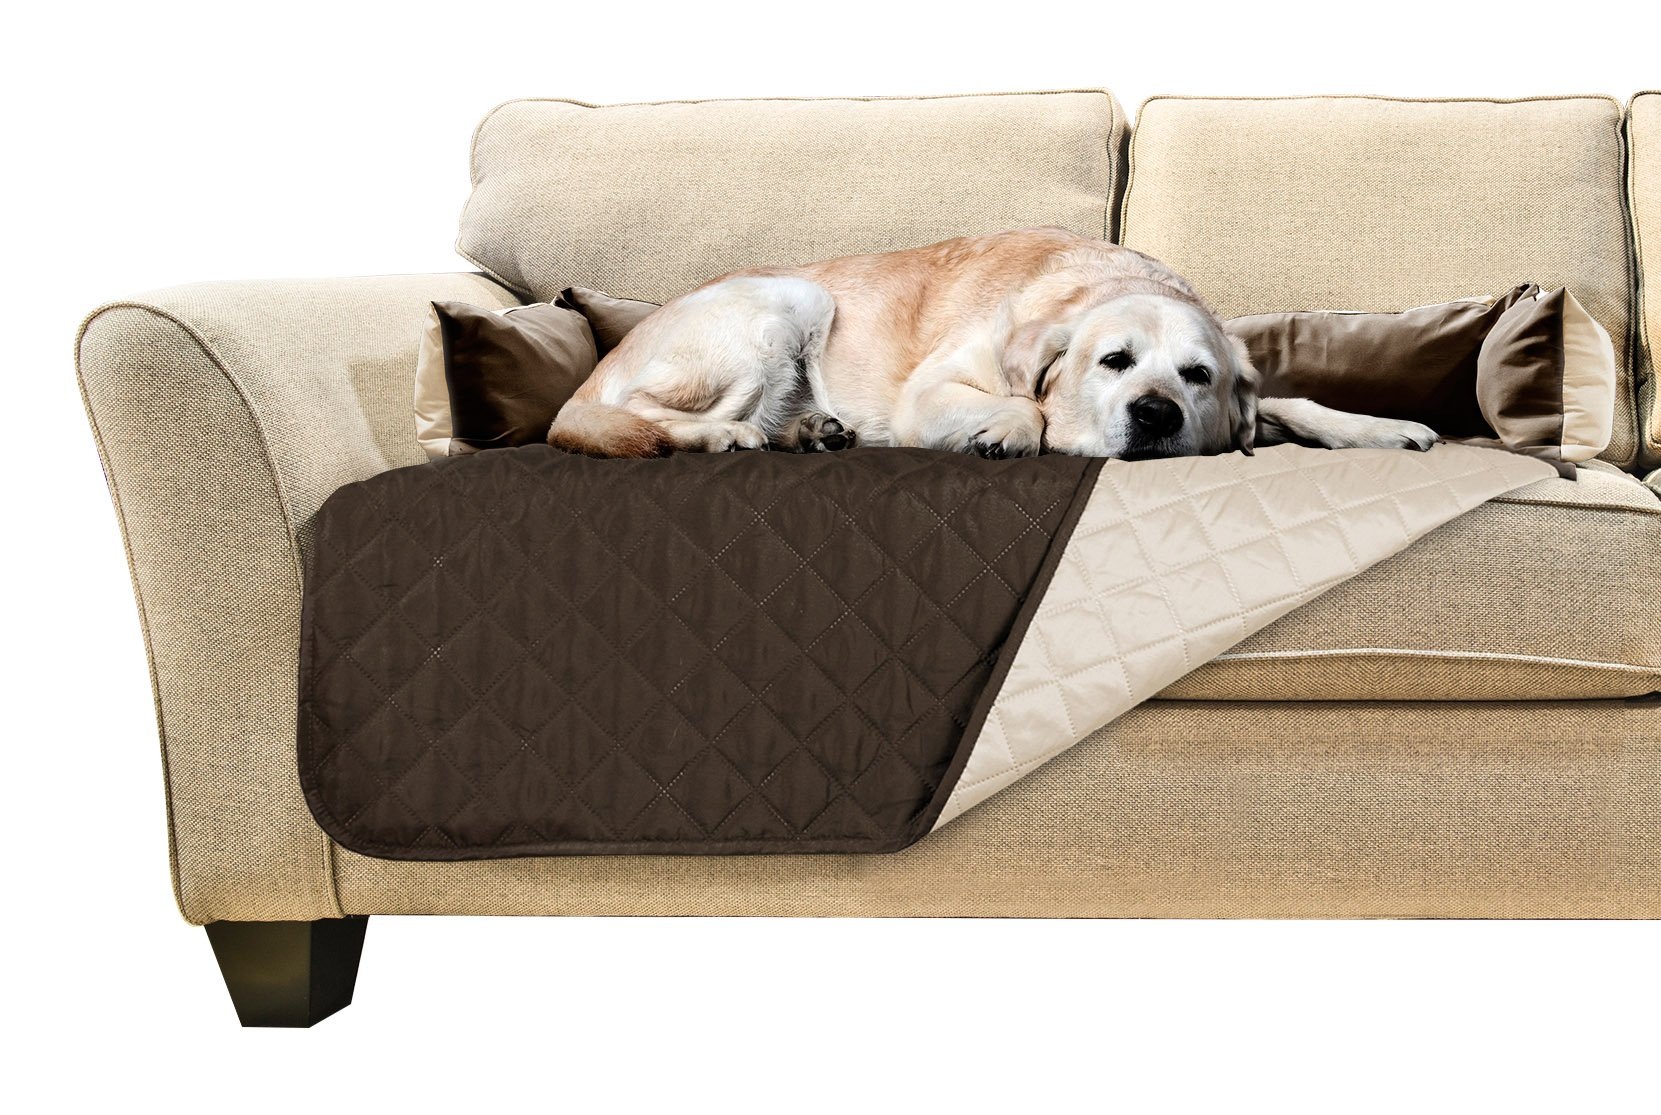 Furhaven Pet Sofa Buddy Reversible Furniture Cover Protector Pet Bed for Dogs and Cats, Large, Espresso/Clay